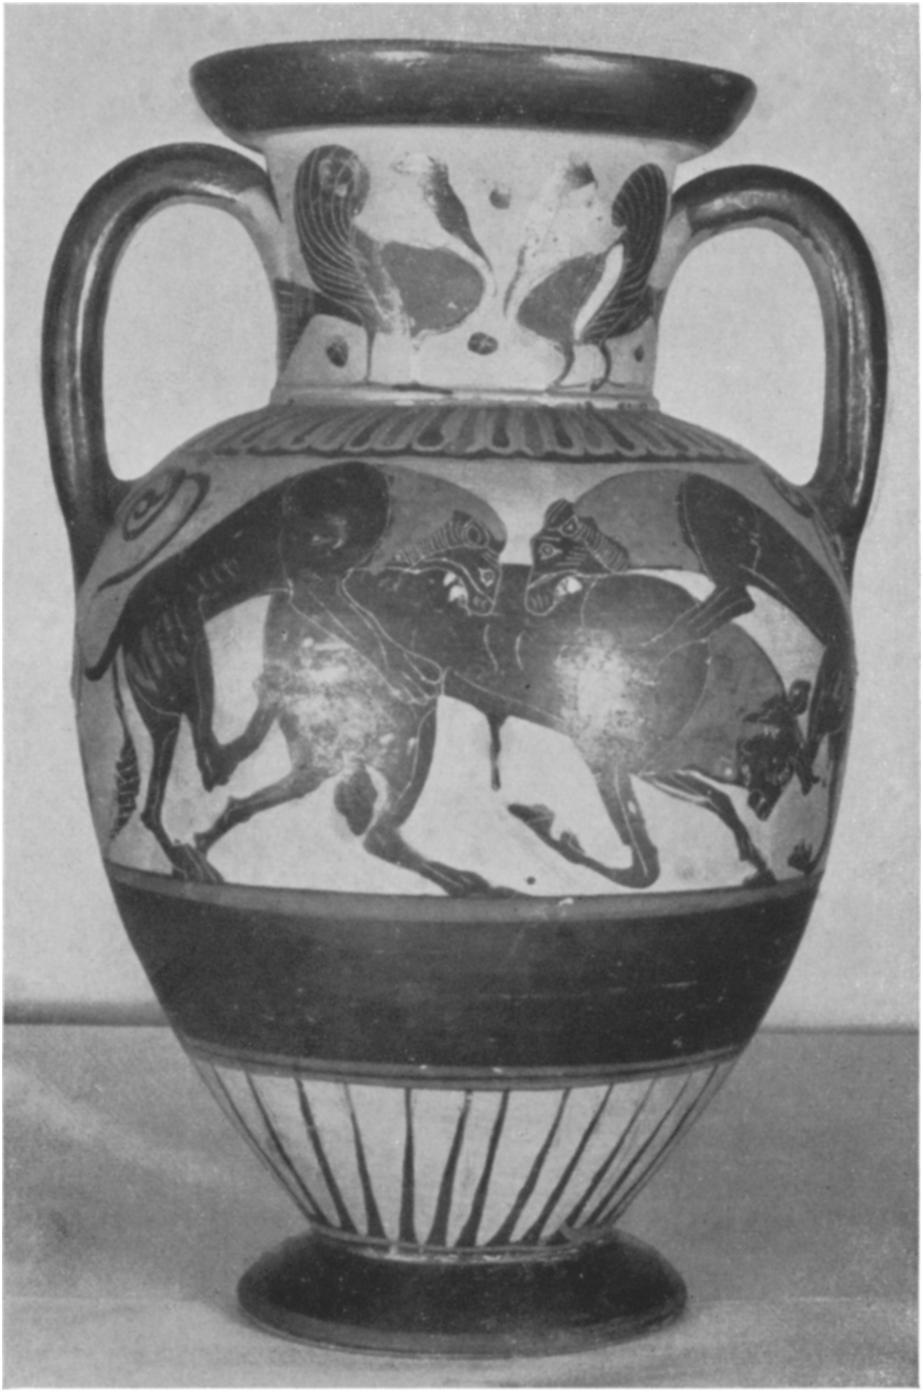 The accession number of the amphora is 46.I.5. Its height is 41/16 in. (35.7 cm.); its diameter is 91/2 in. (24.2, cm.). In two places the surface shows signs of having been in contact with two other vases during the firing.